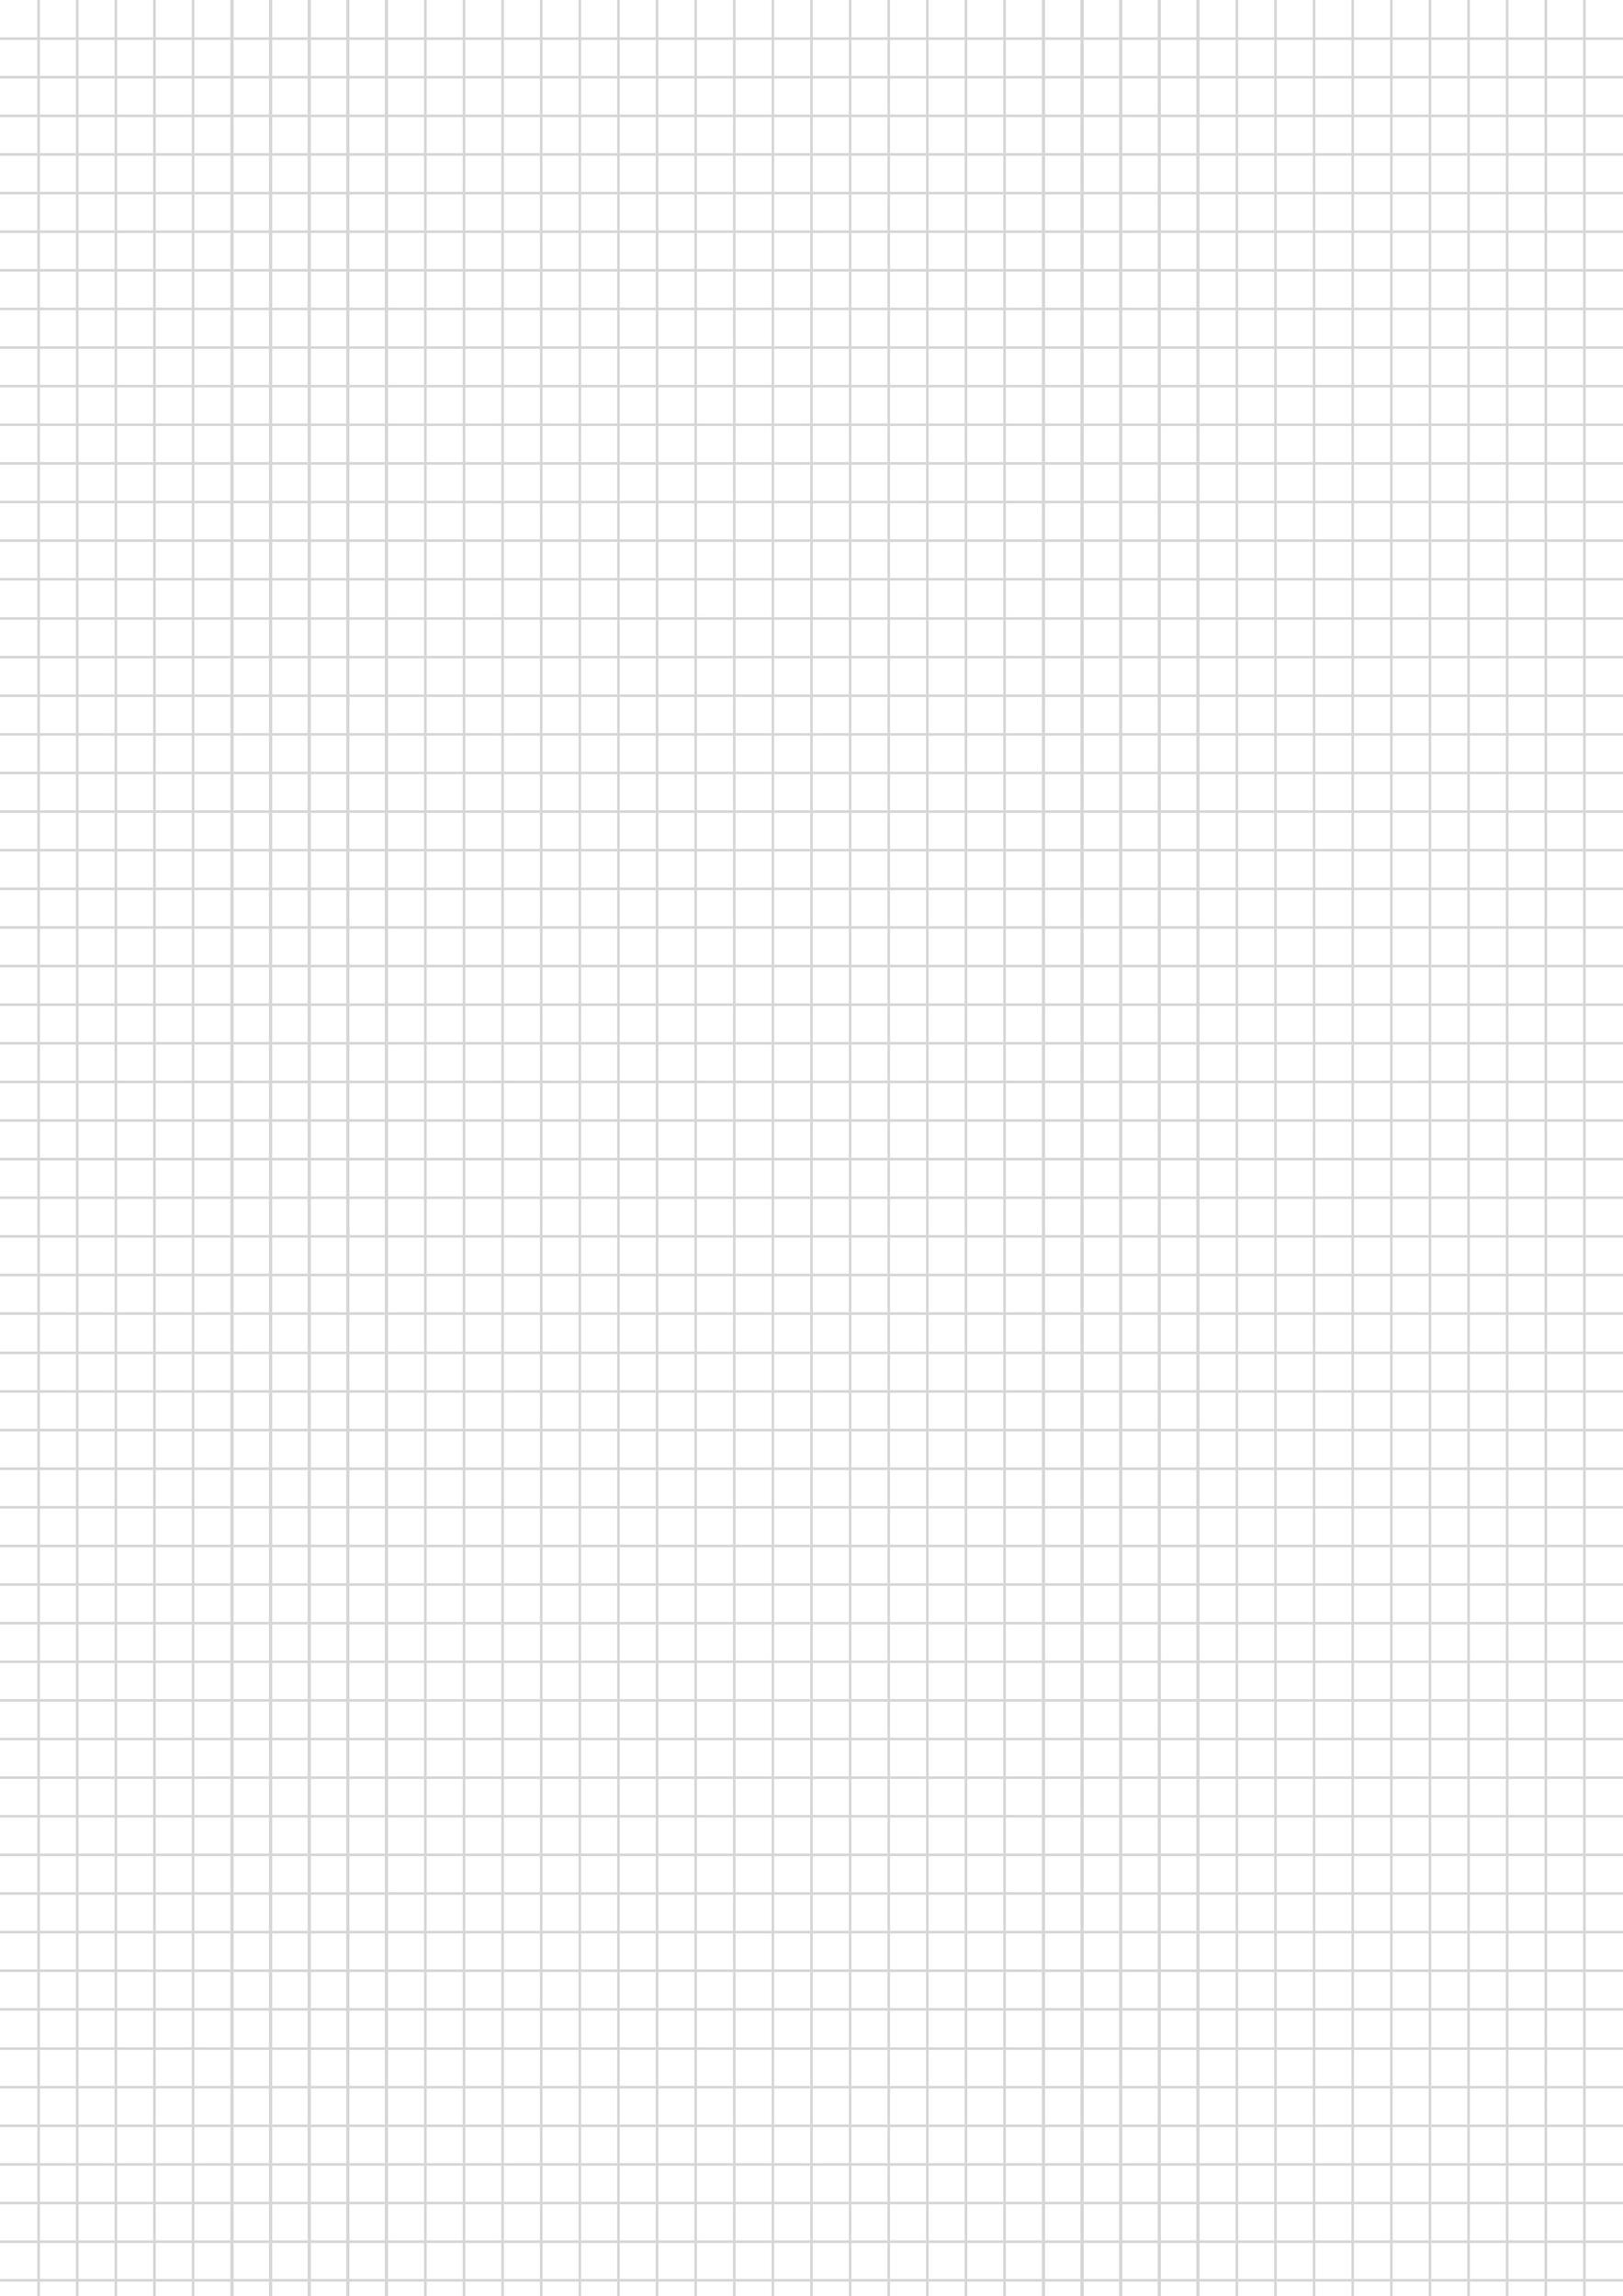 graph paper background for powerpoint - Isken kaptanband co